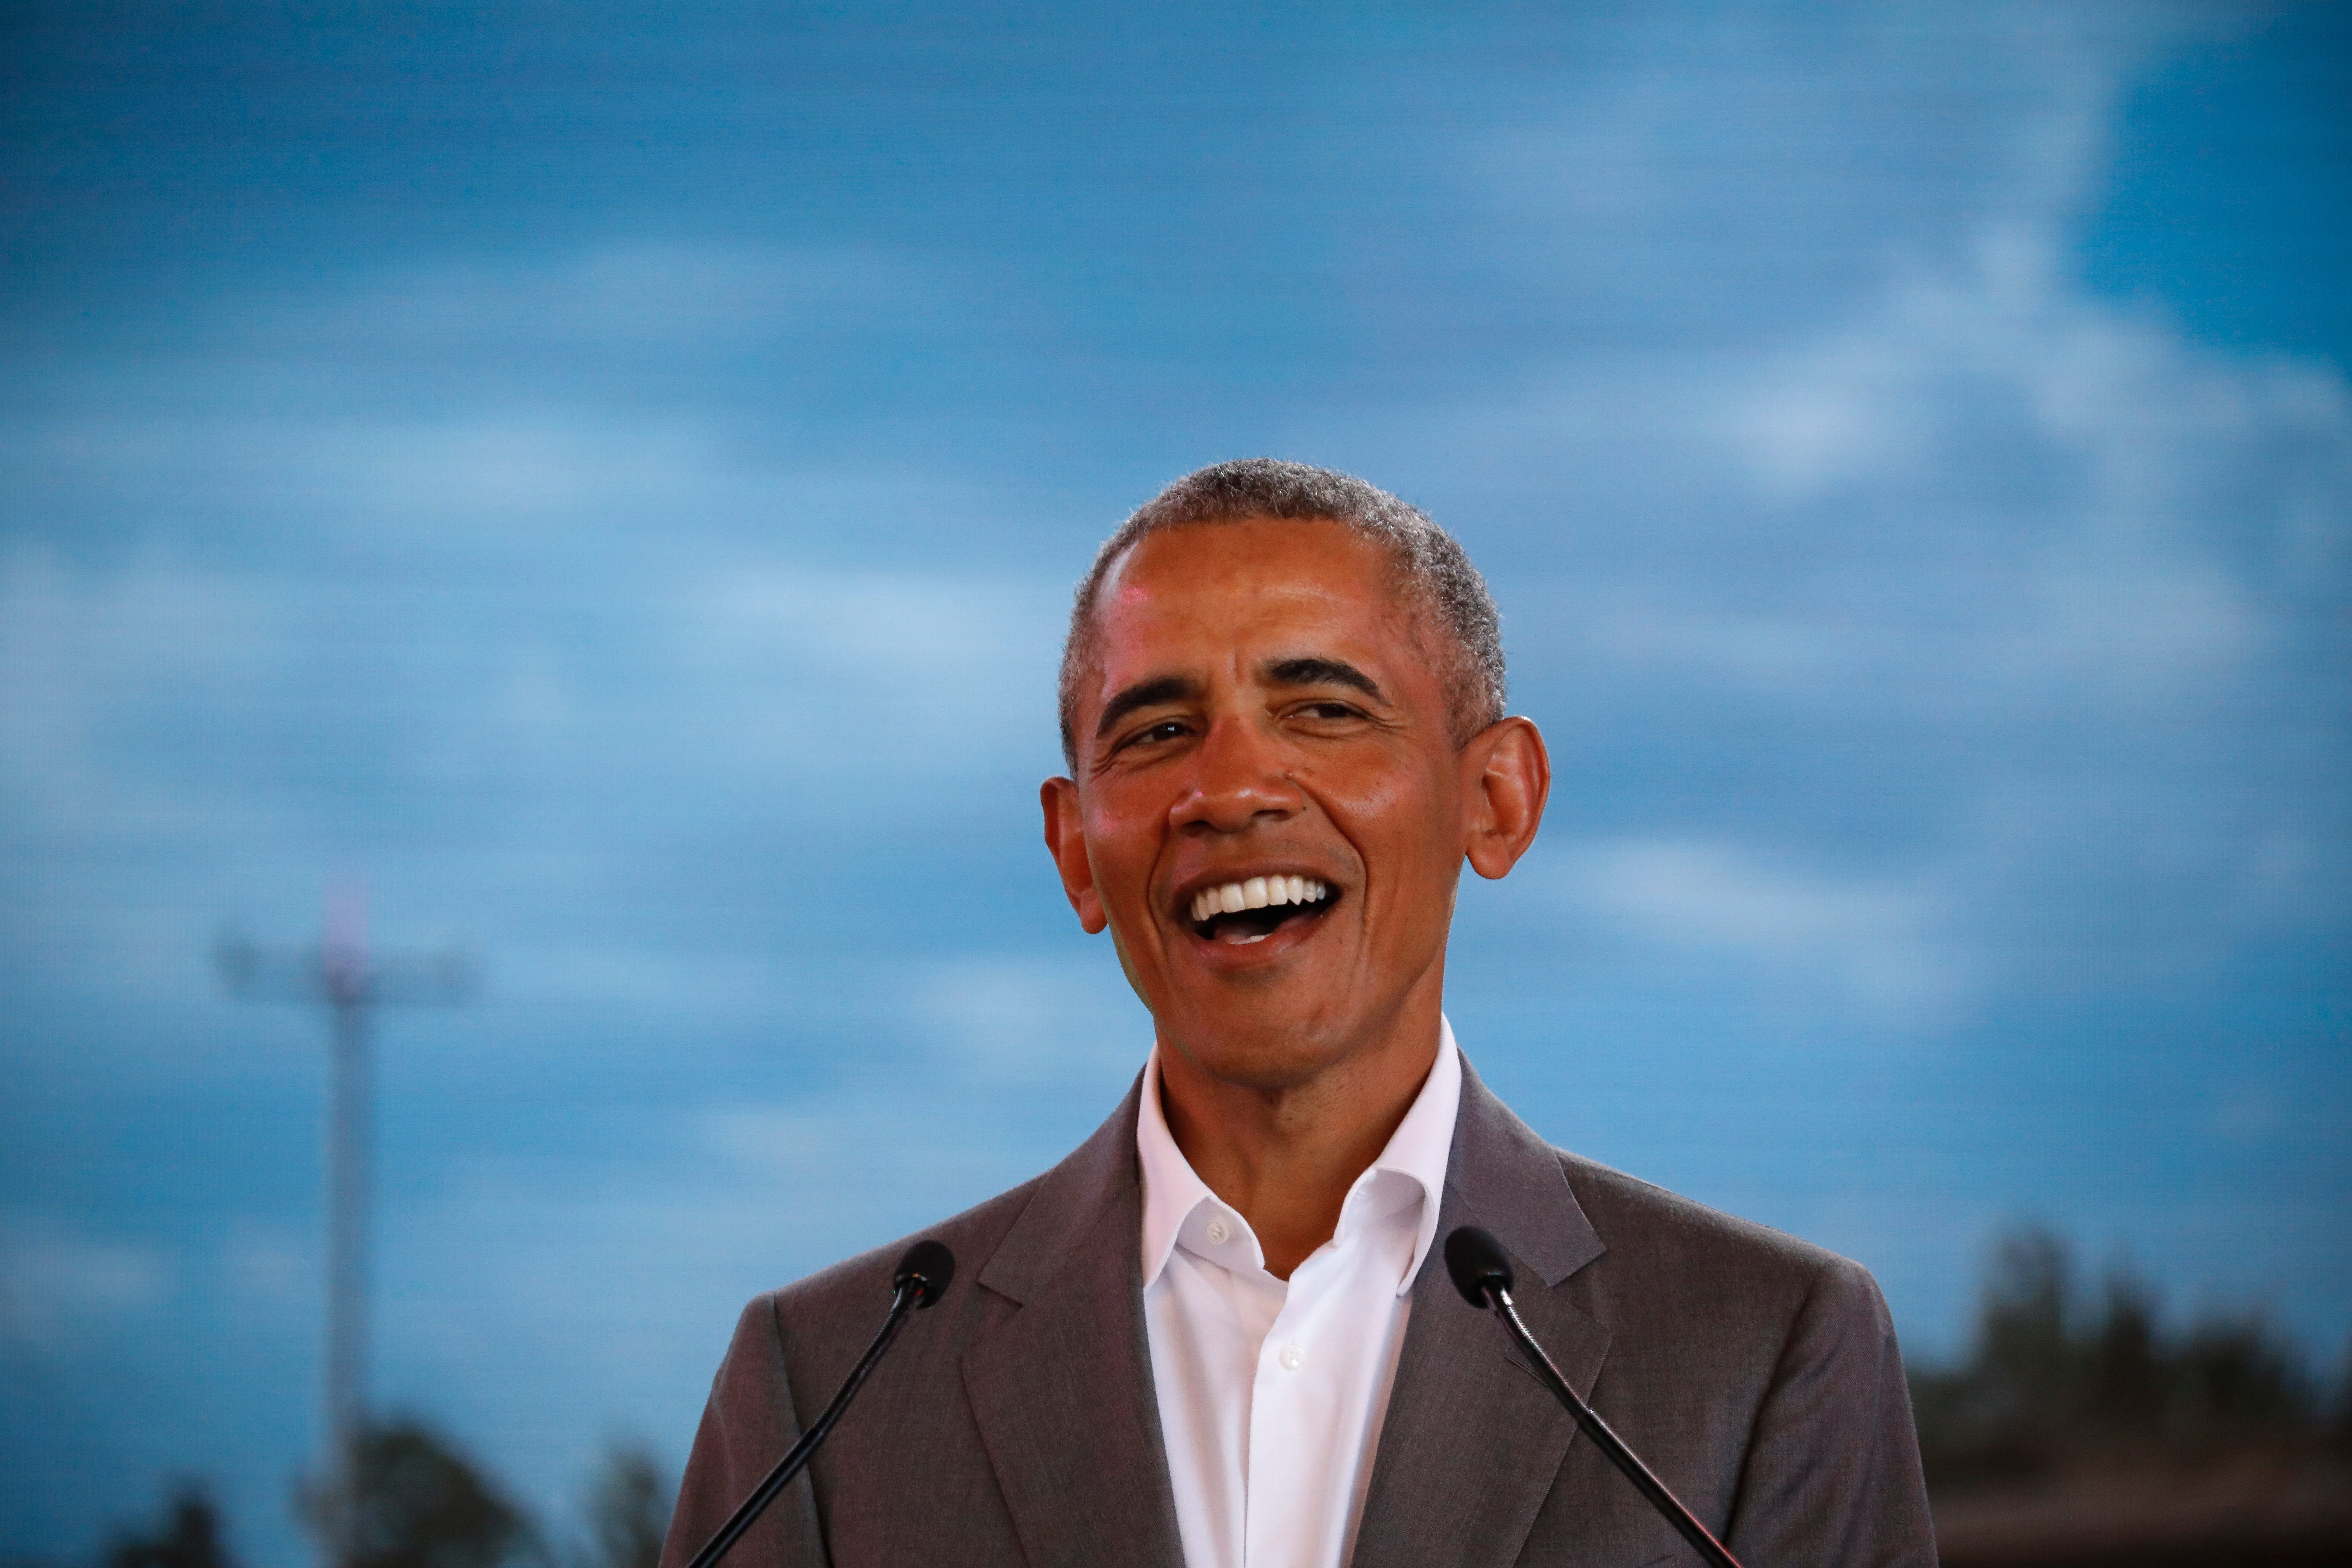 'Factfulness' and 'Educated' among the titles on Obama's summer reading list